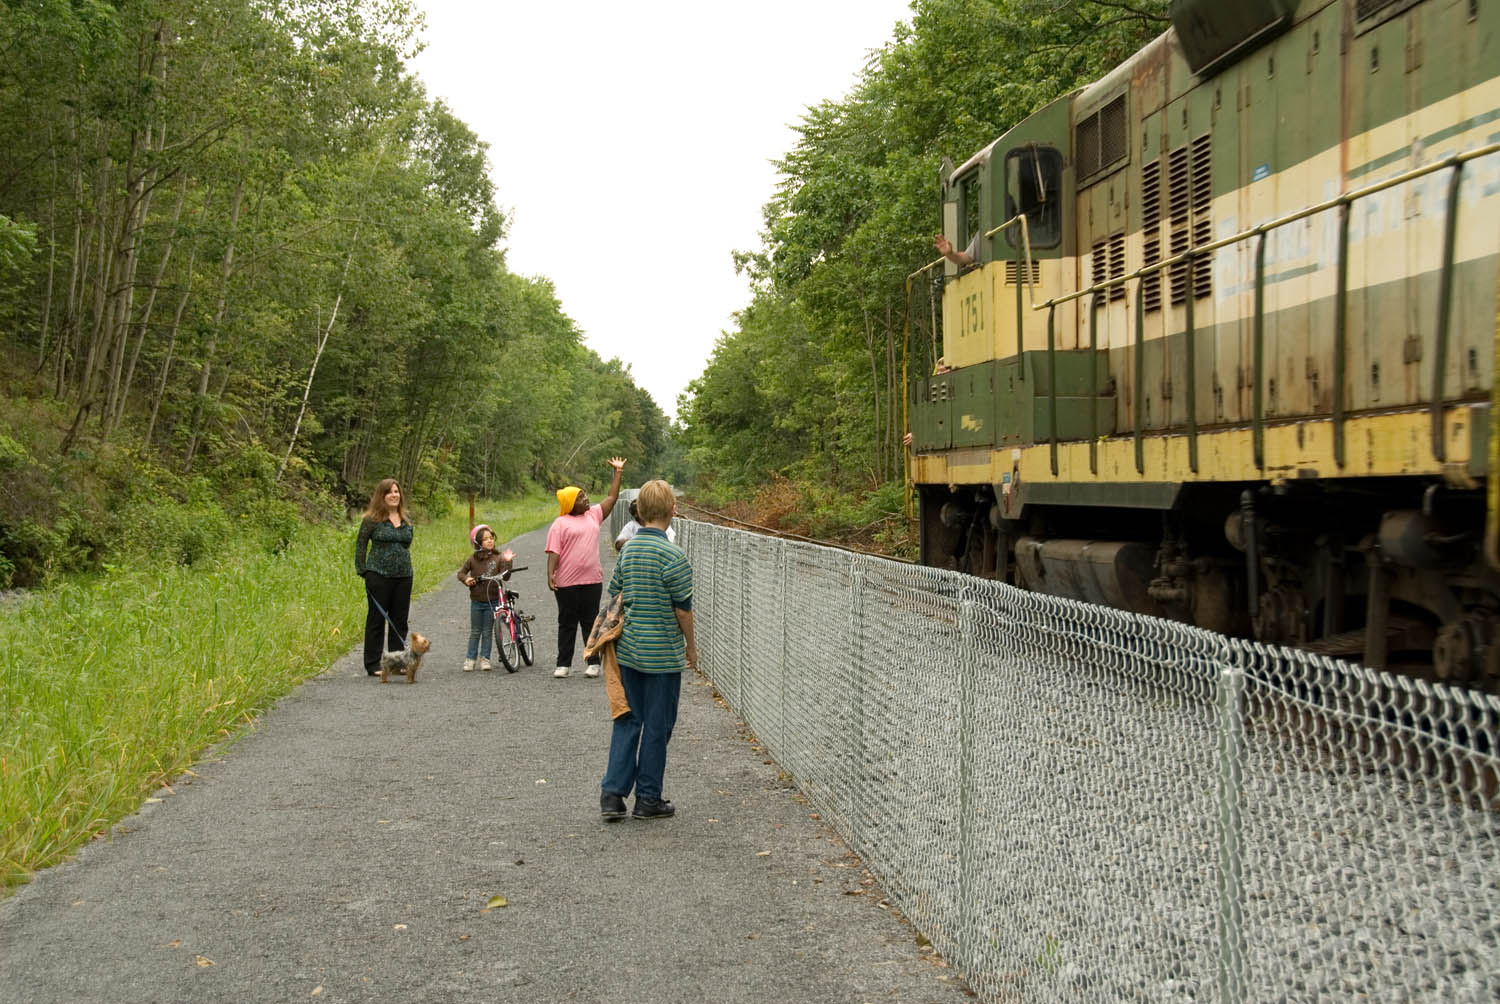 photo: The Luzerne County NRT is an active freight rail line. Photo by Mark James.